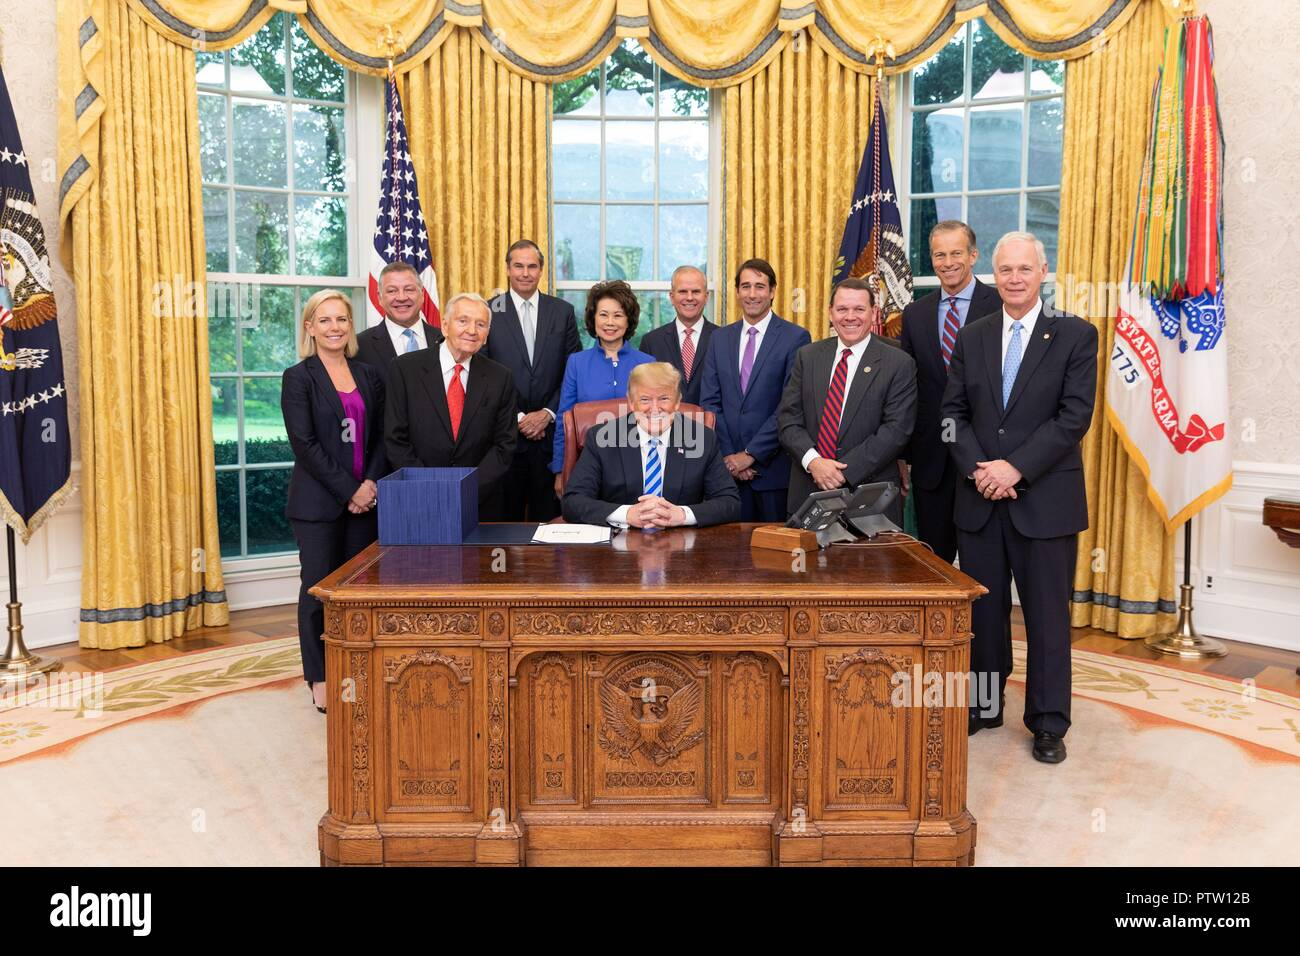 U.S President Donald Trump poses with members of Congress and his cabinet after signing H.R. 302, the FAA reauthorization Act of 2018 in the Oval Office of the White House October 5, 2018 Washington, DC. - Stock Image